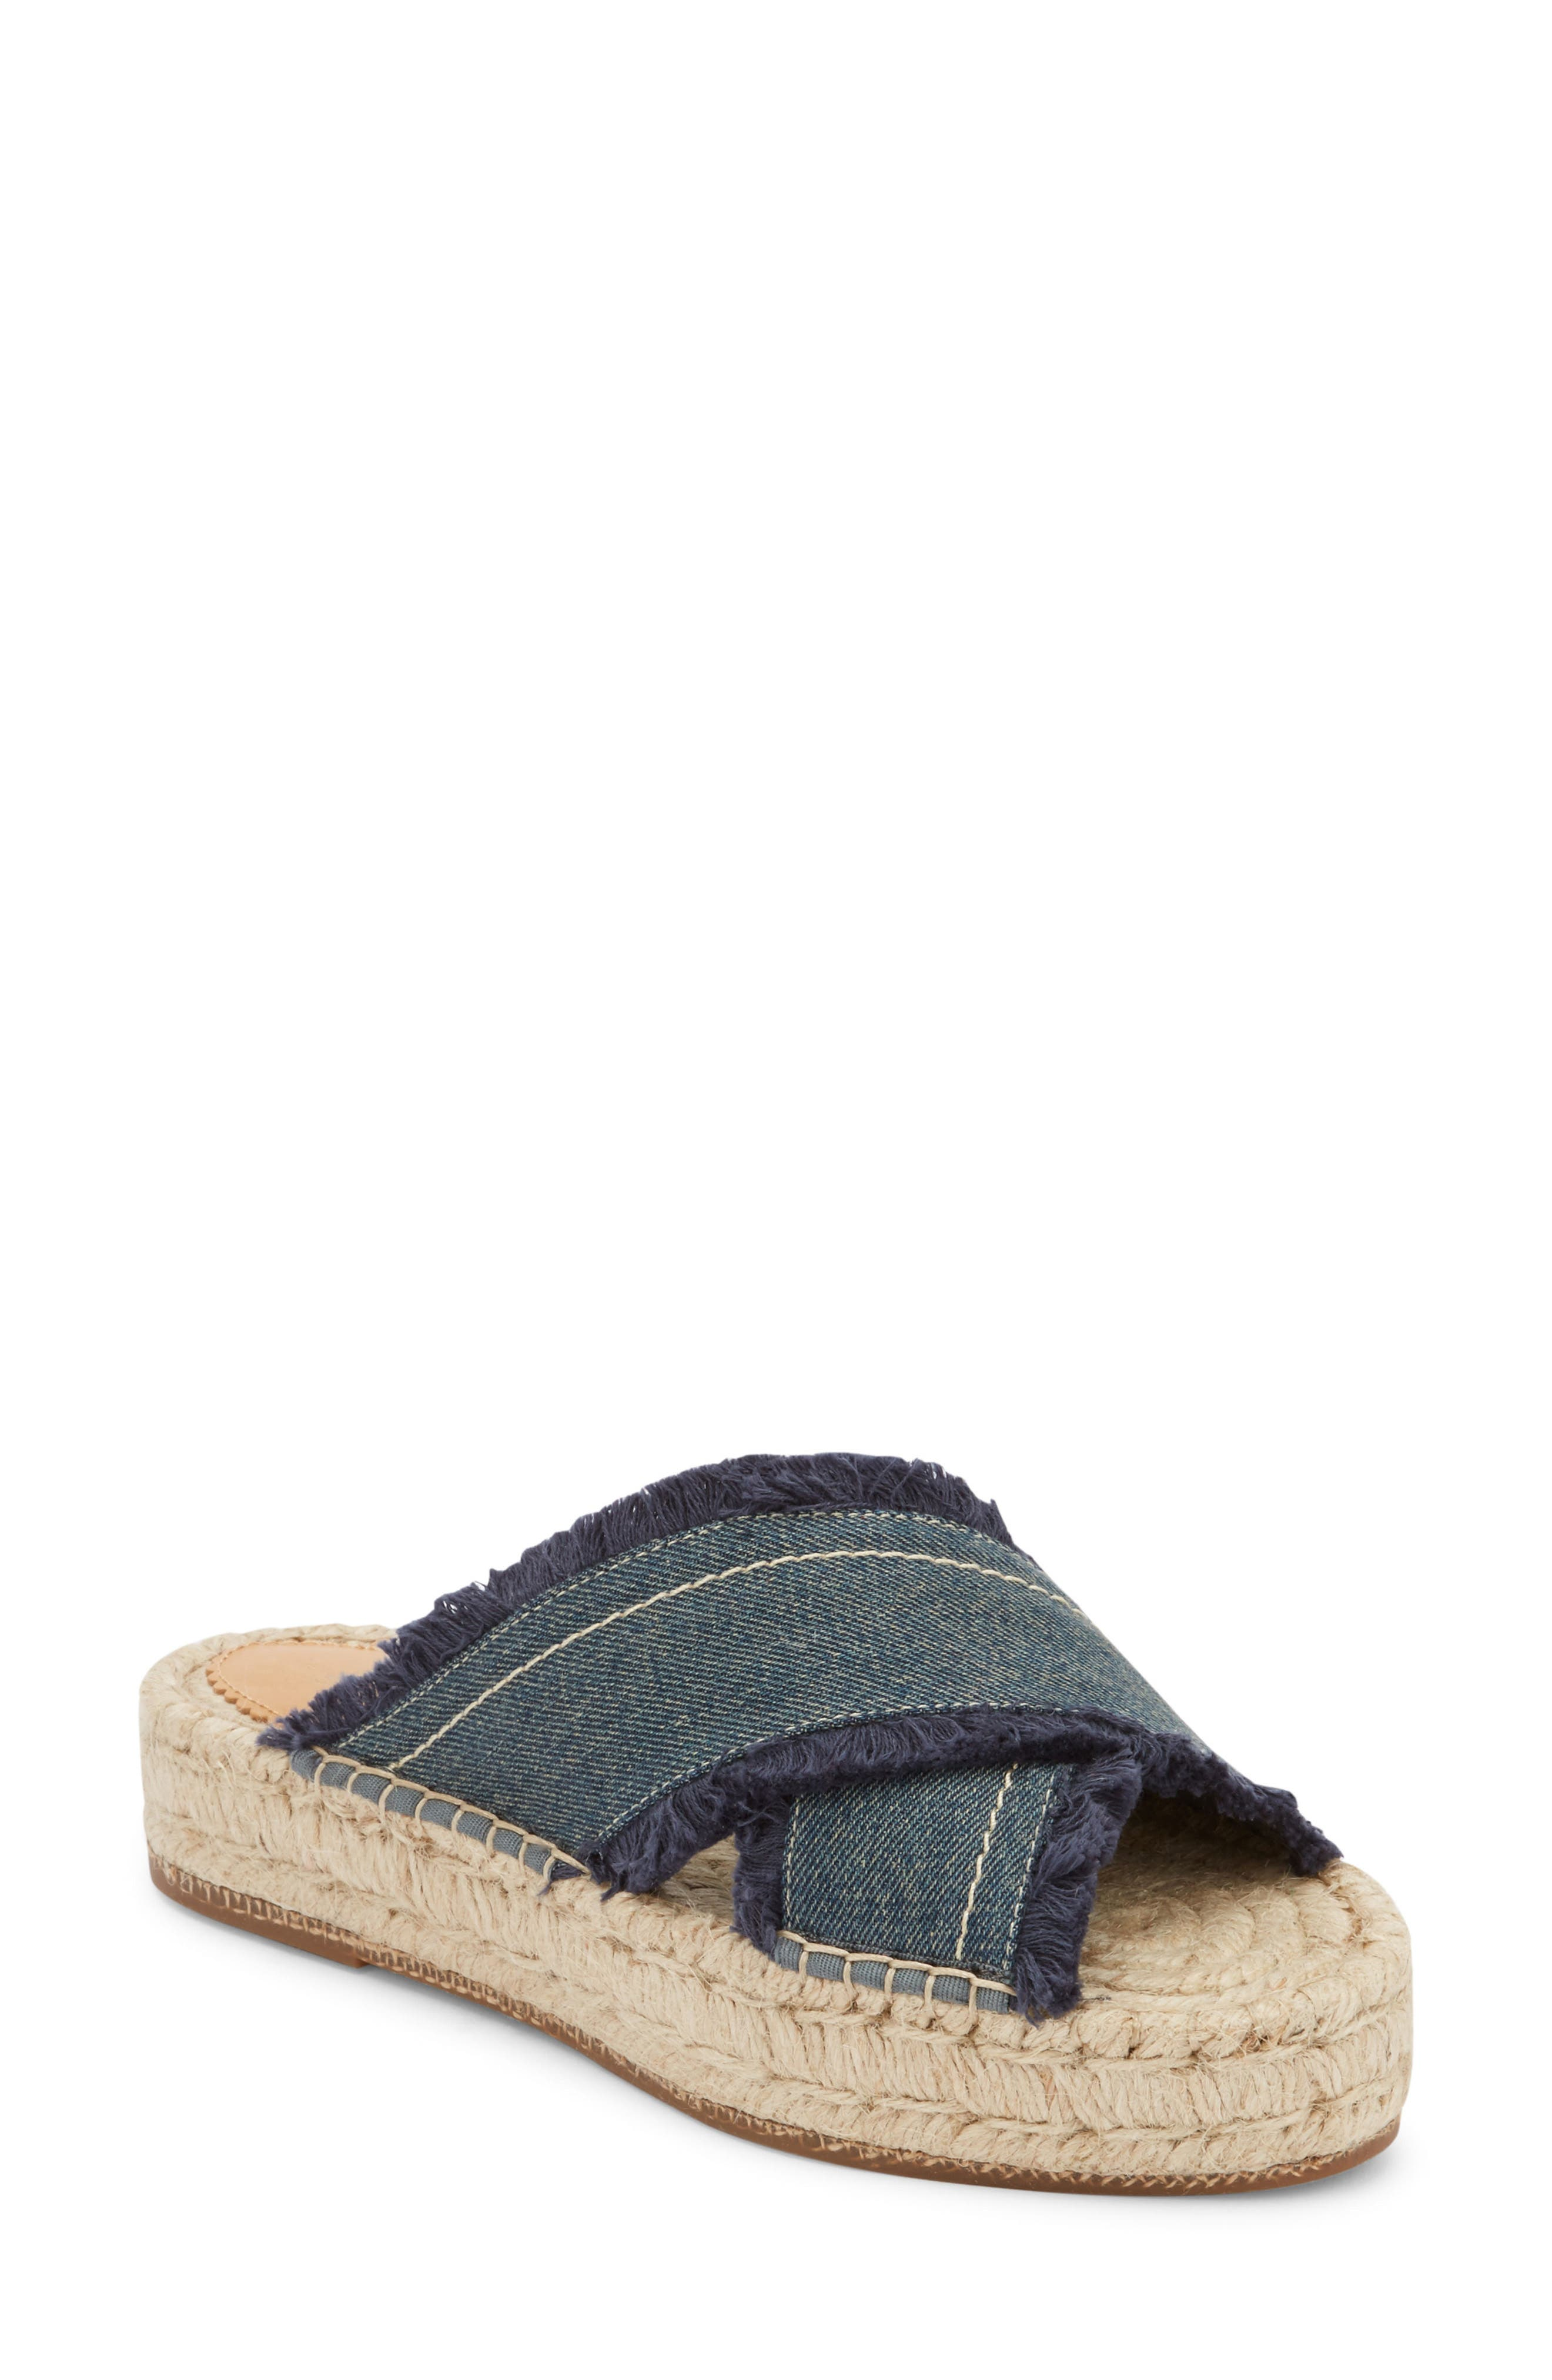 Anabelle Espadrille Sandal,                         Main,                         color, DARK BLUE DENIM FABRIC